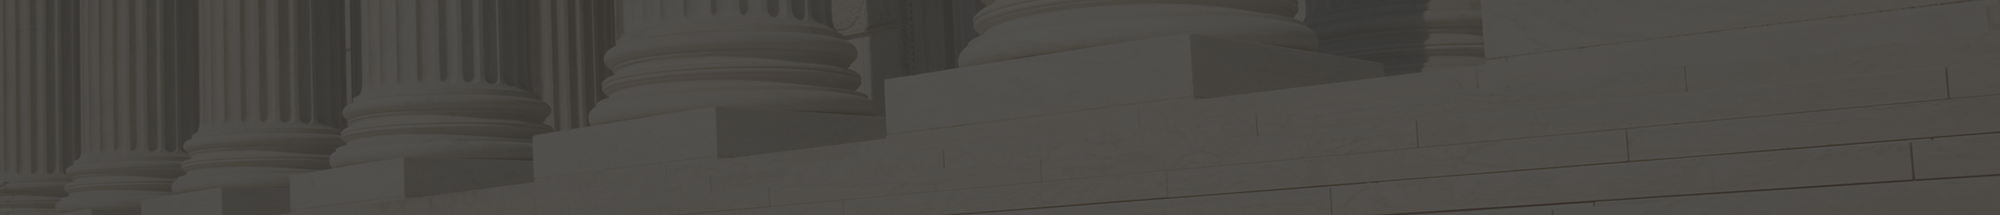 Berks County Family Law Attorneys | Reading PA | Miller Law